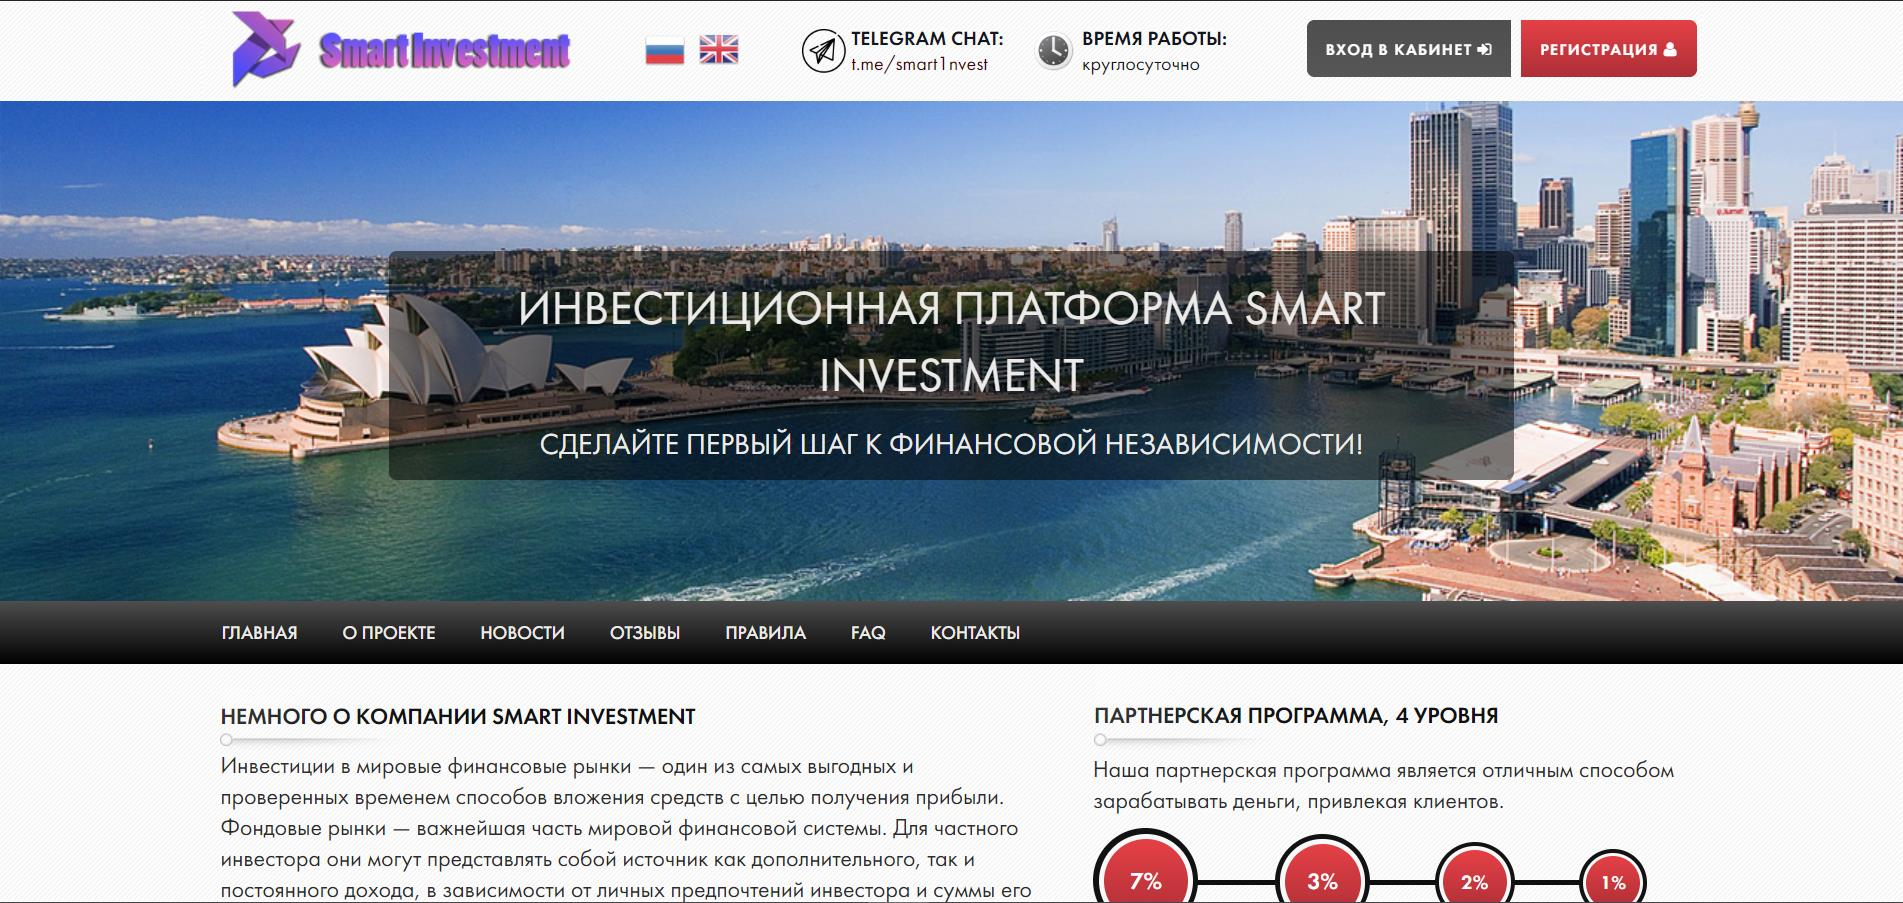 HYIP-CHECK.RU - Мониторинг HYIP Проектов. РЕФБЕК 50% - Страница 4 ScreenShot_20200115202502